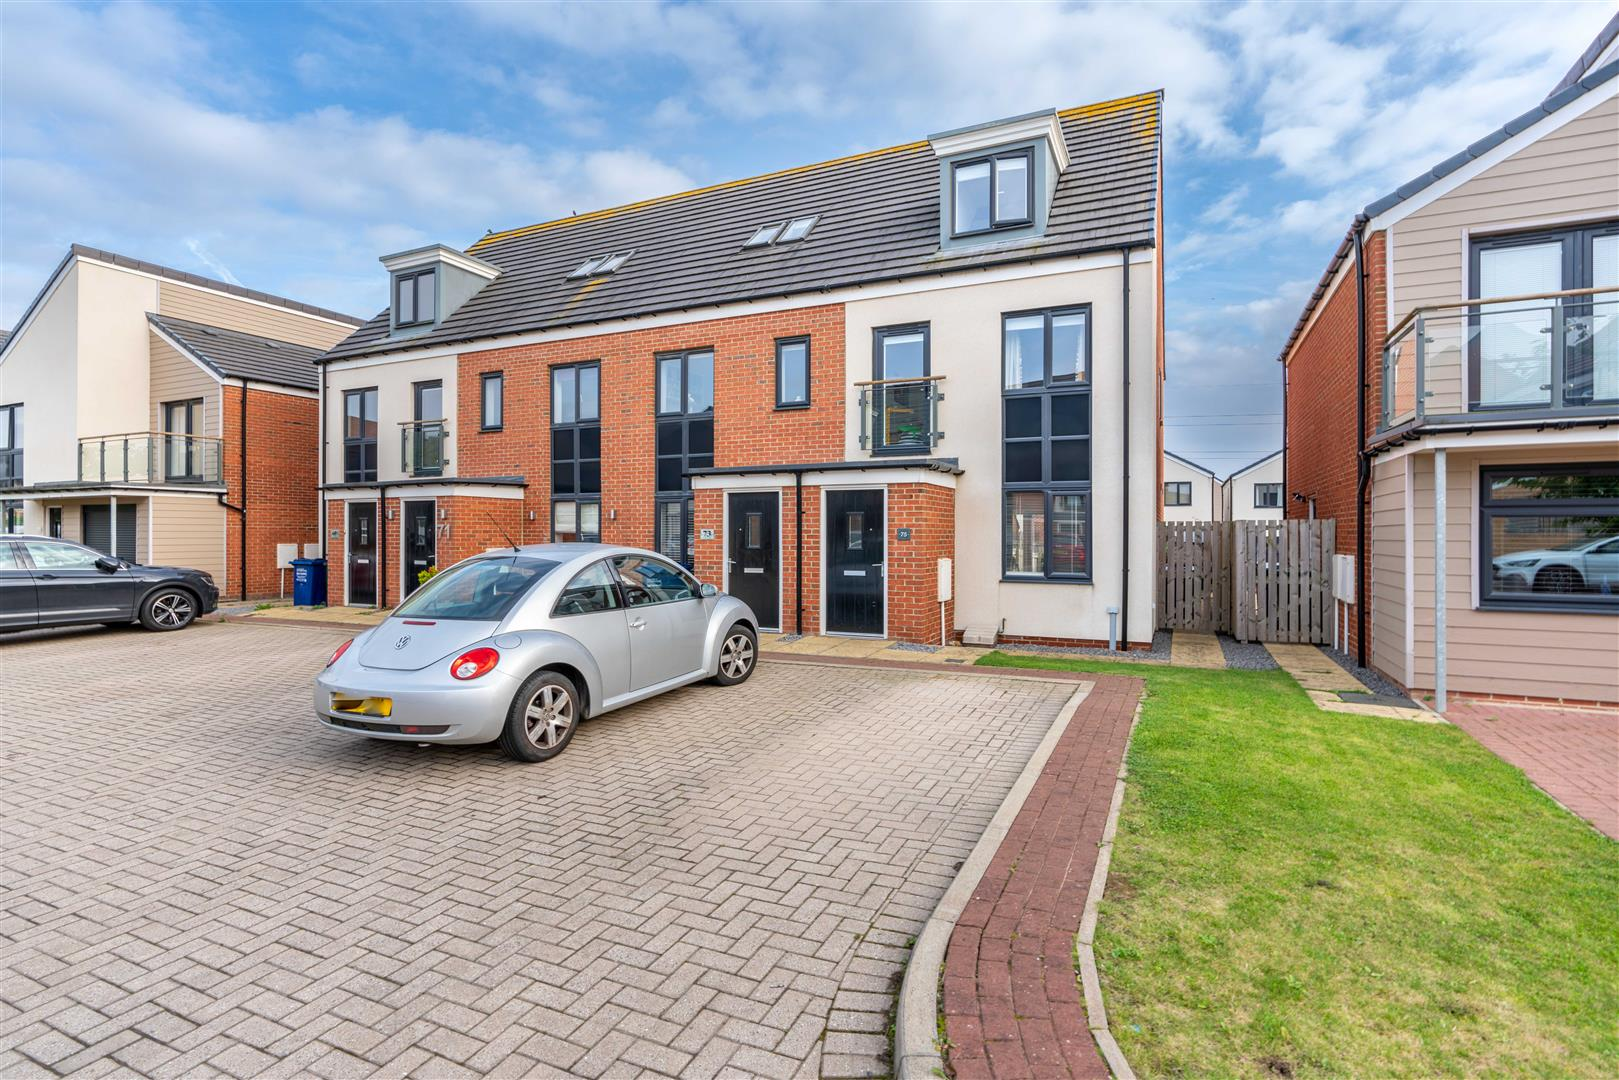 3 bed town house for sale in Greville Gardens, Newcastle Upon Tyne, NE13